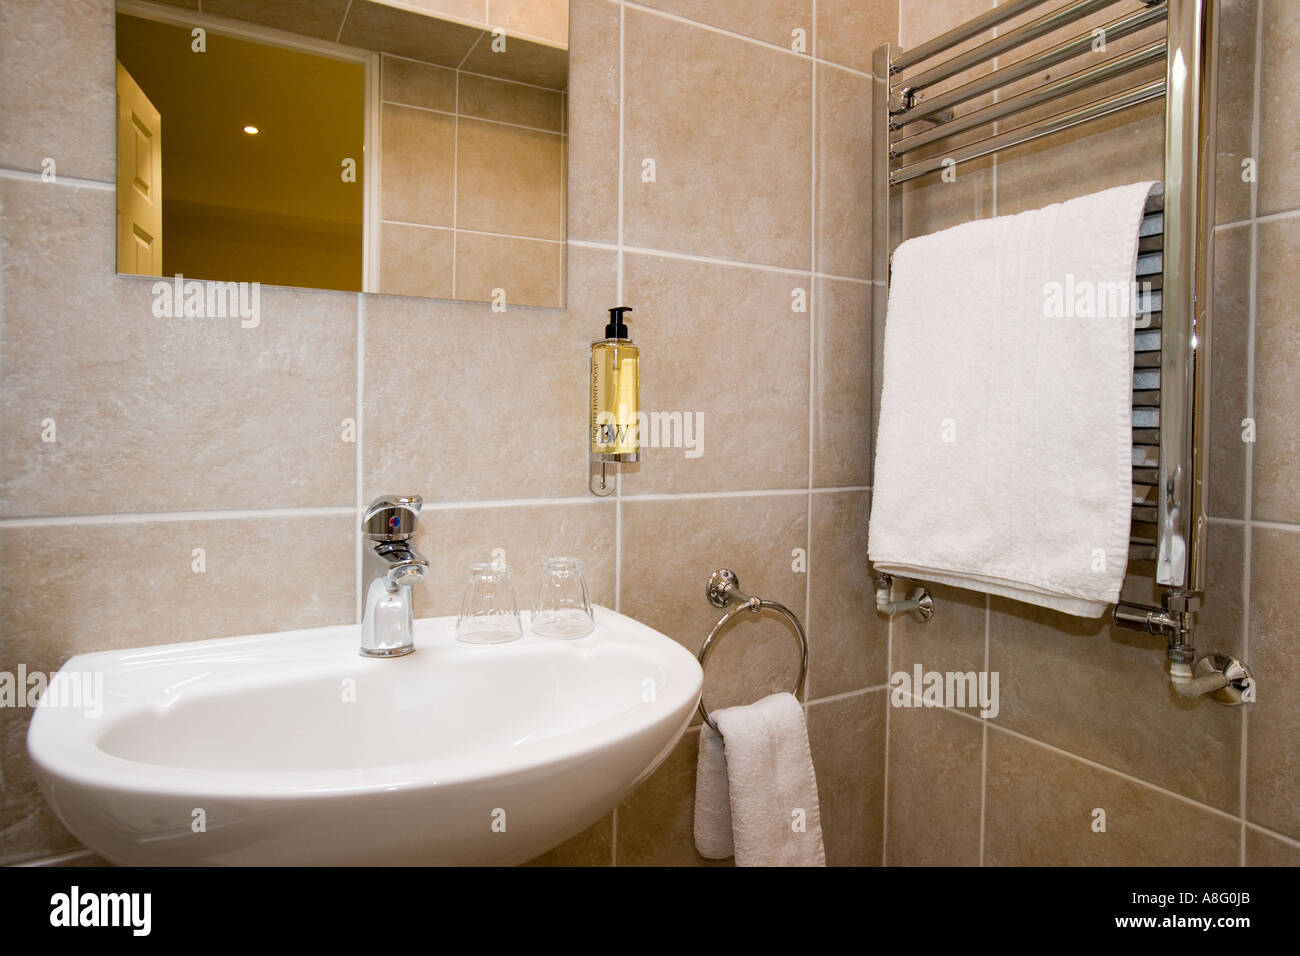 Lovely Bathroom Sink With Wall Mounted Soap Dispenser And Towel Rail